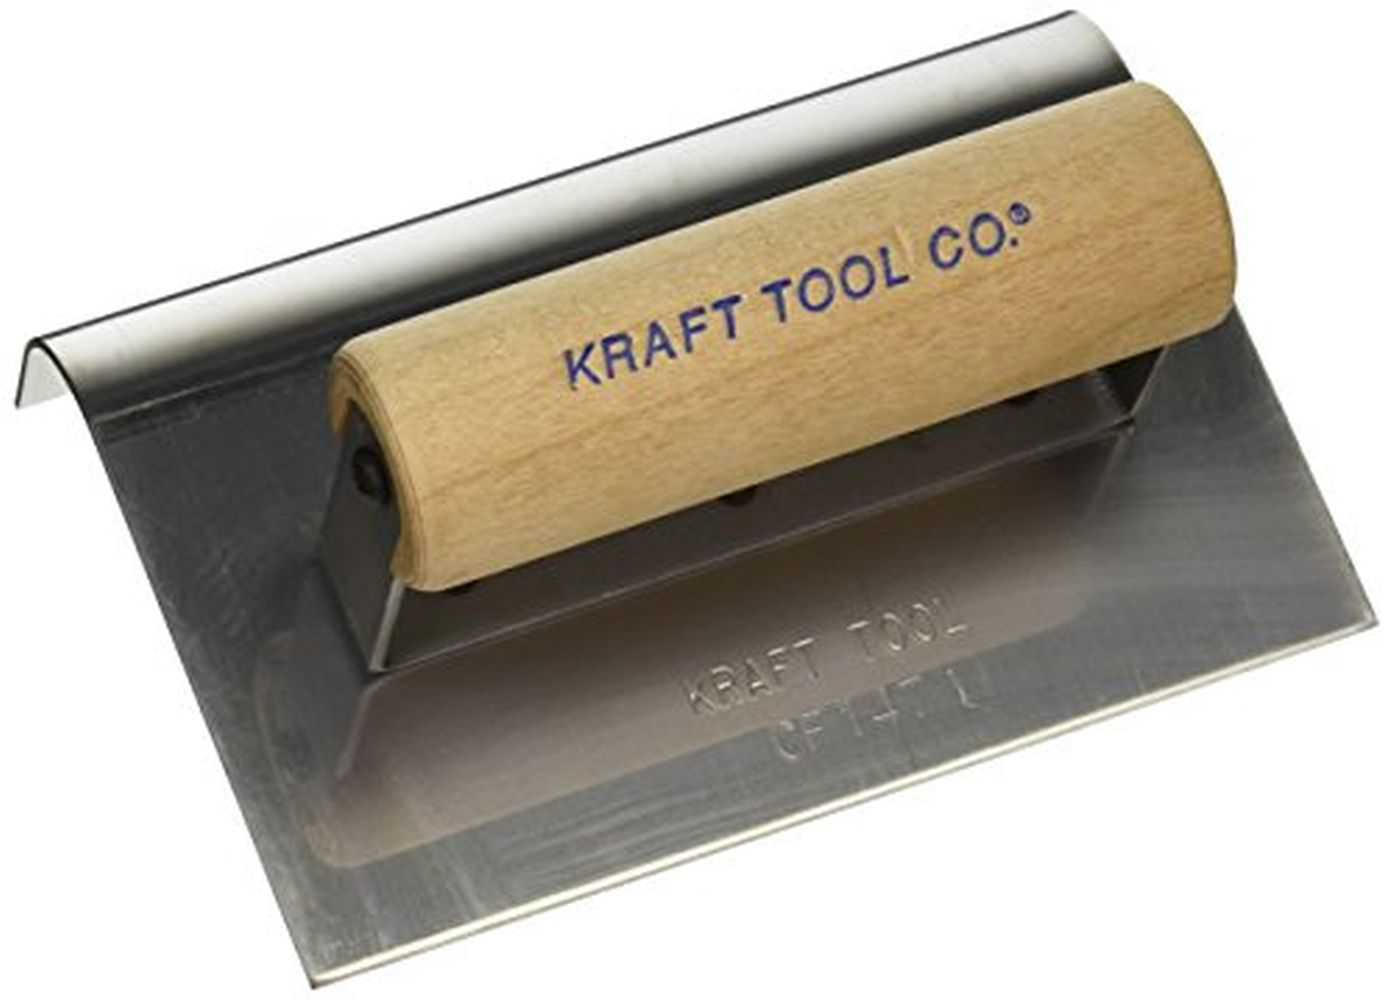 Kraft CF147 3/4' Radius Outside Curb & Sidewalk Tool w/Wood Handle, 6 x 4'